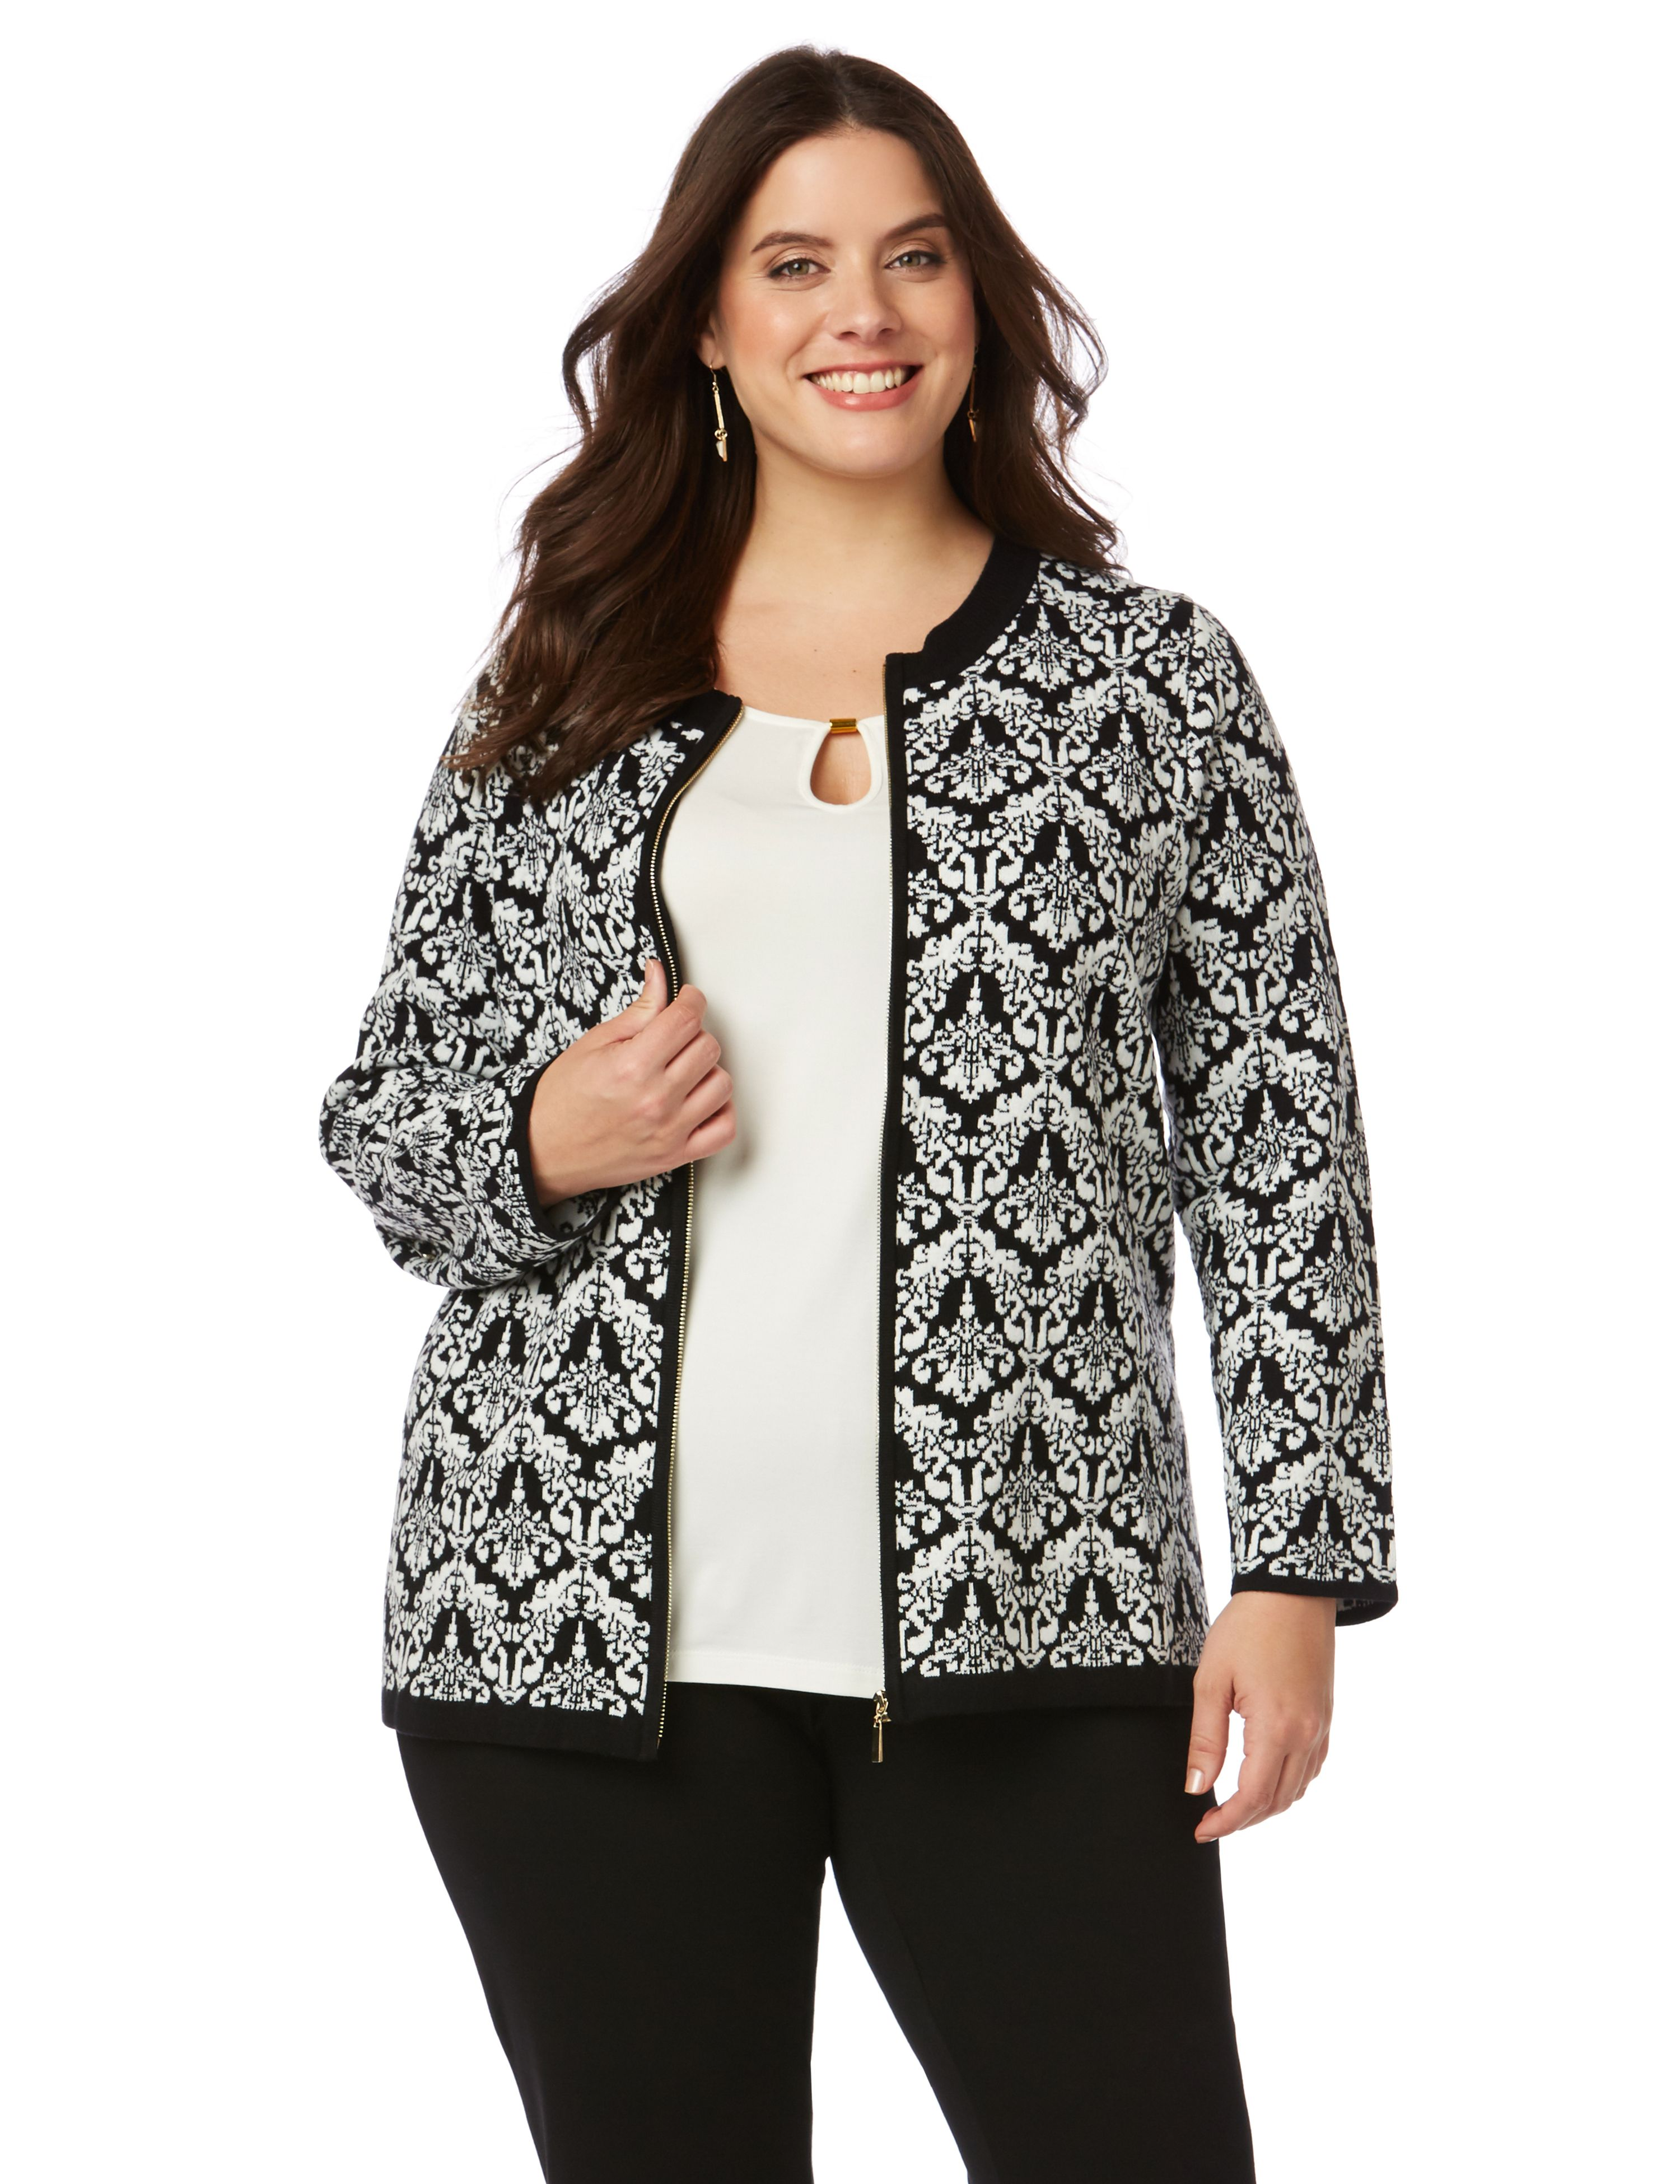 Women's Plus Size Cardigans & Sweaters | Catherines